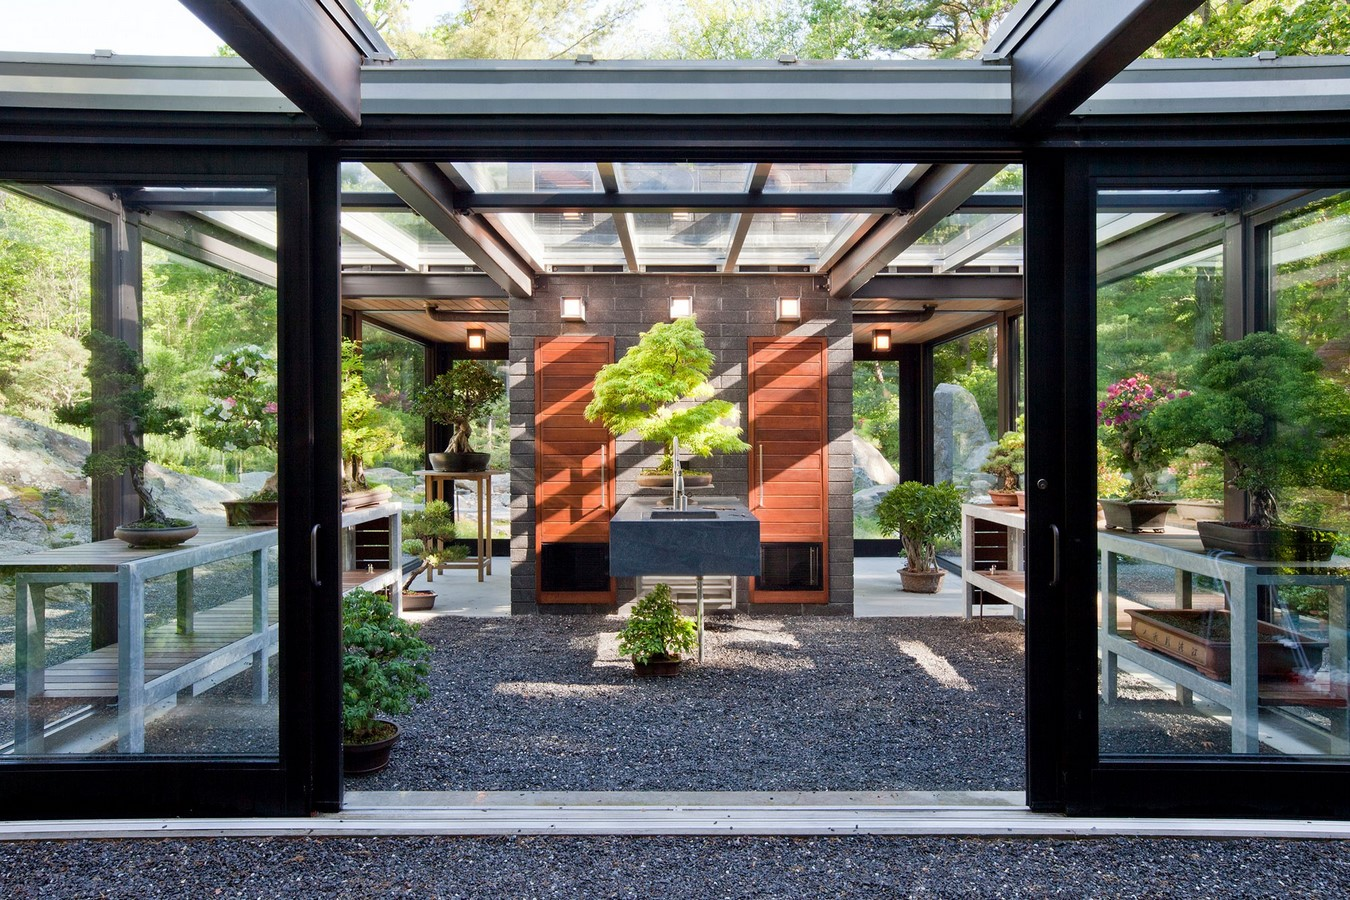 20 Examples of home with beautiful central atriums - Sheet4